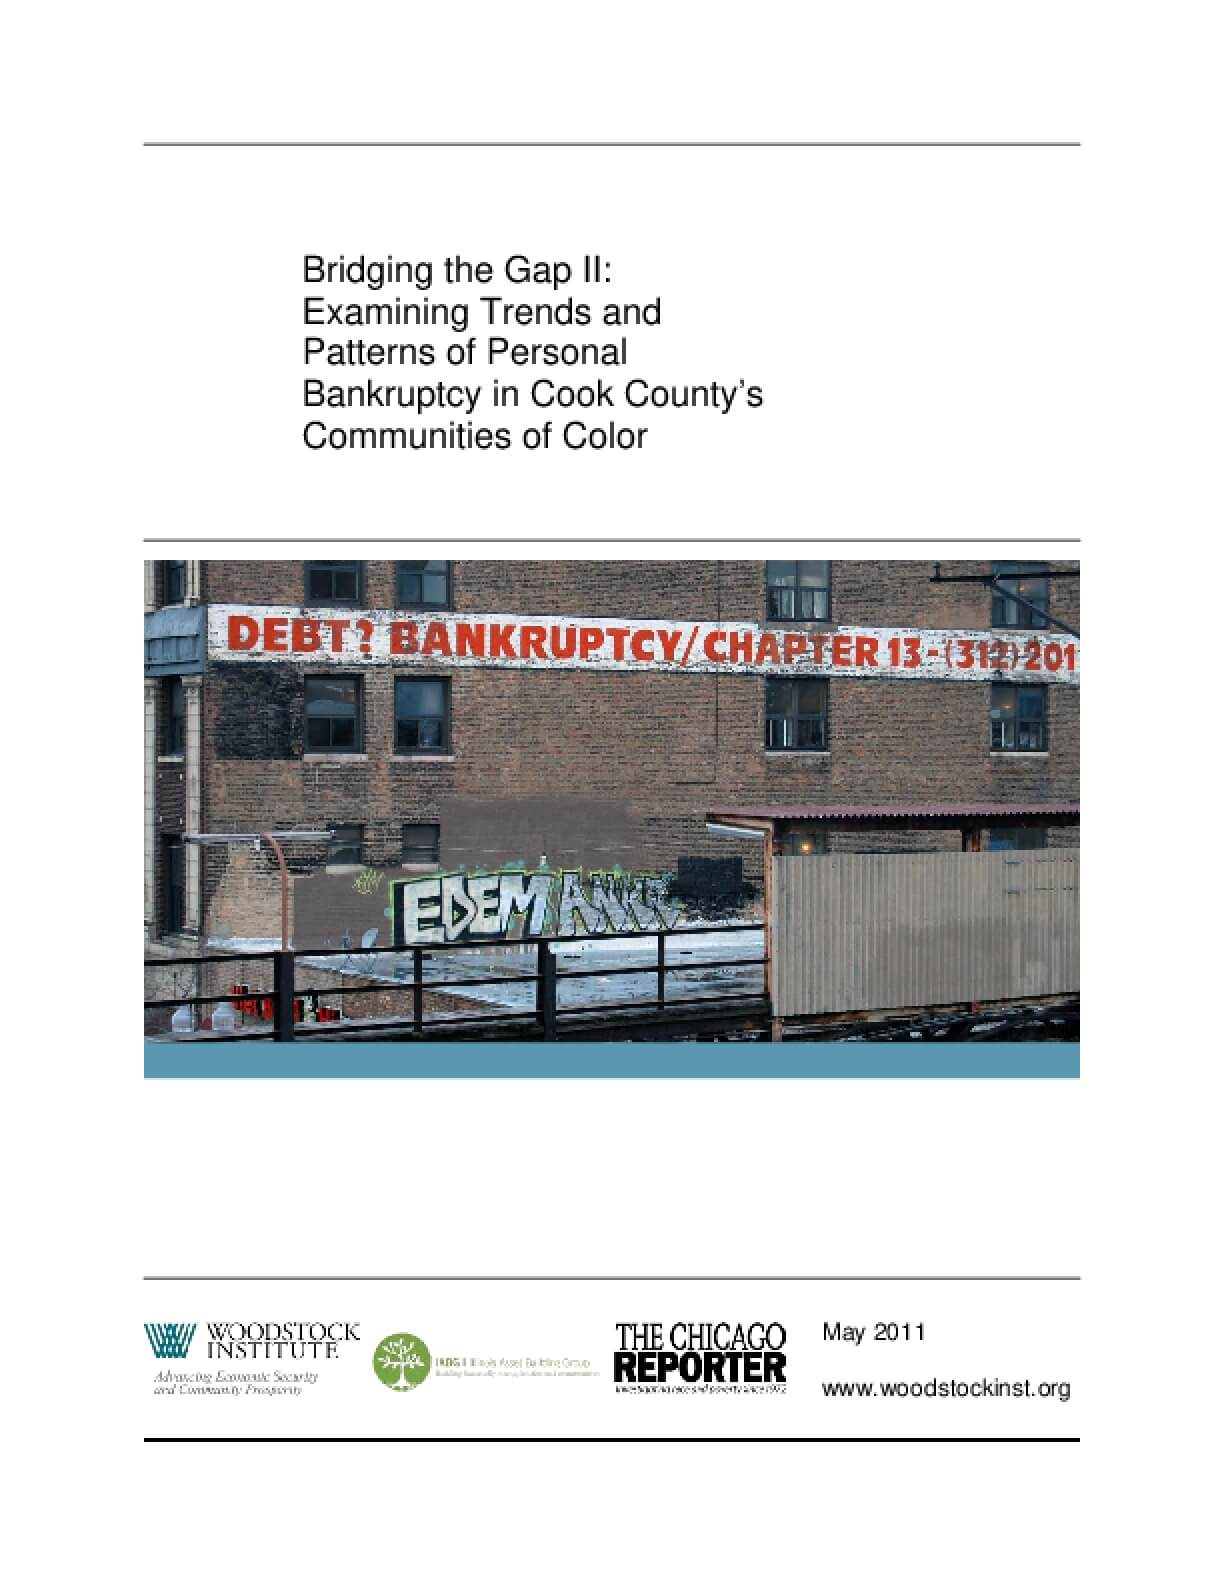 Bridging the Gap II:  Examining Trends and Patterns of Personal Bankruptcy in Cook County's Communities of Color